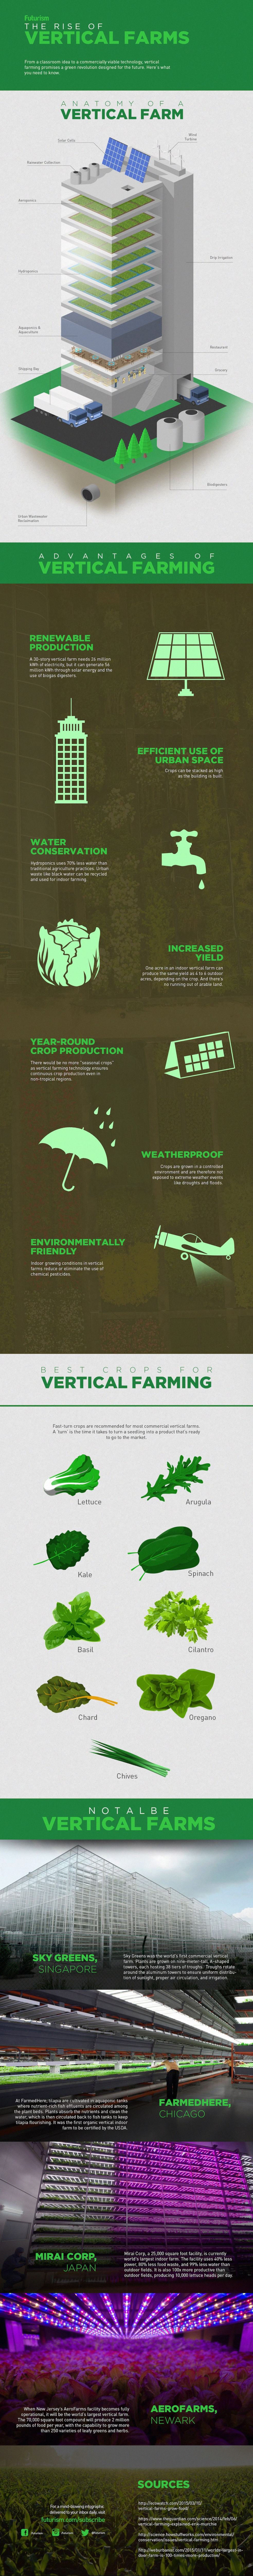 Vertical Farms To The Rescue! - Infographic